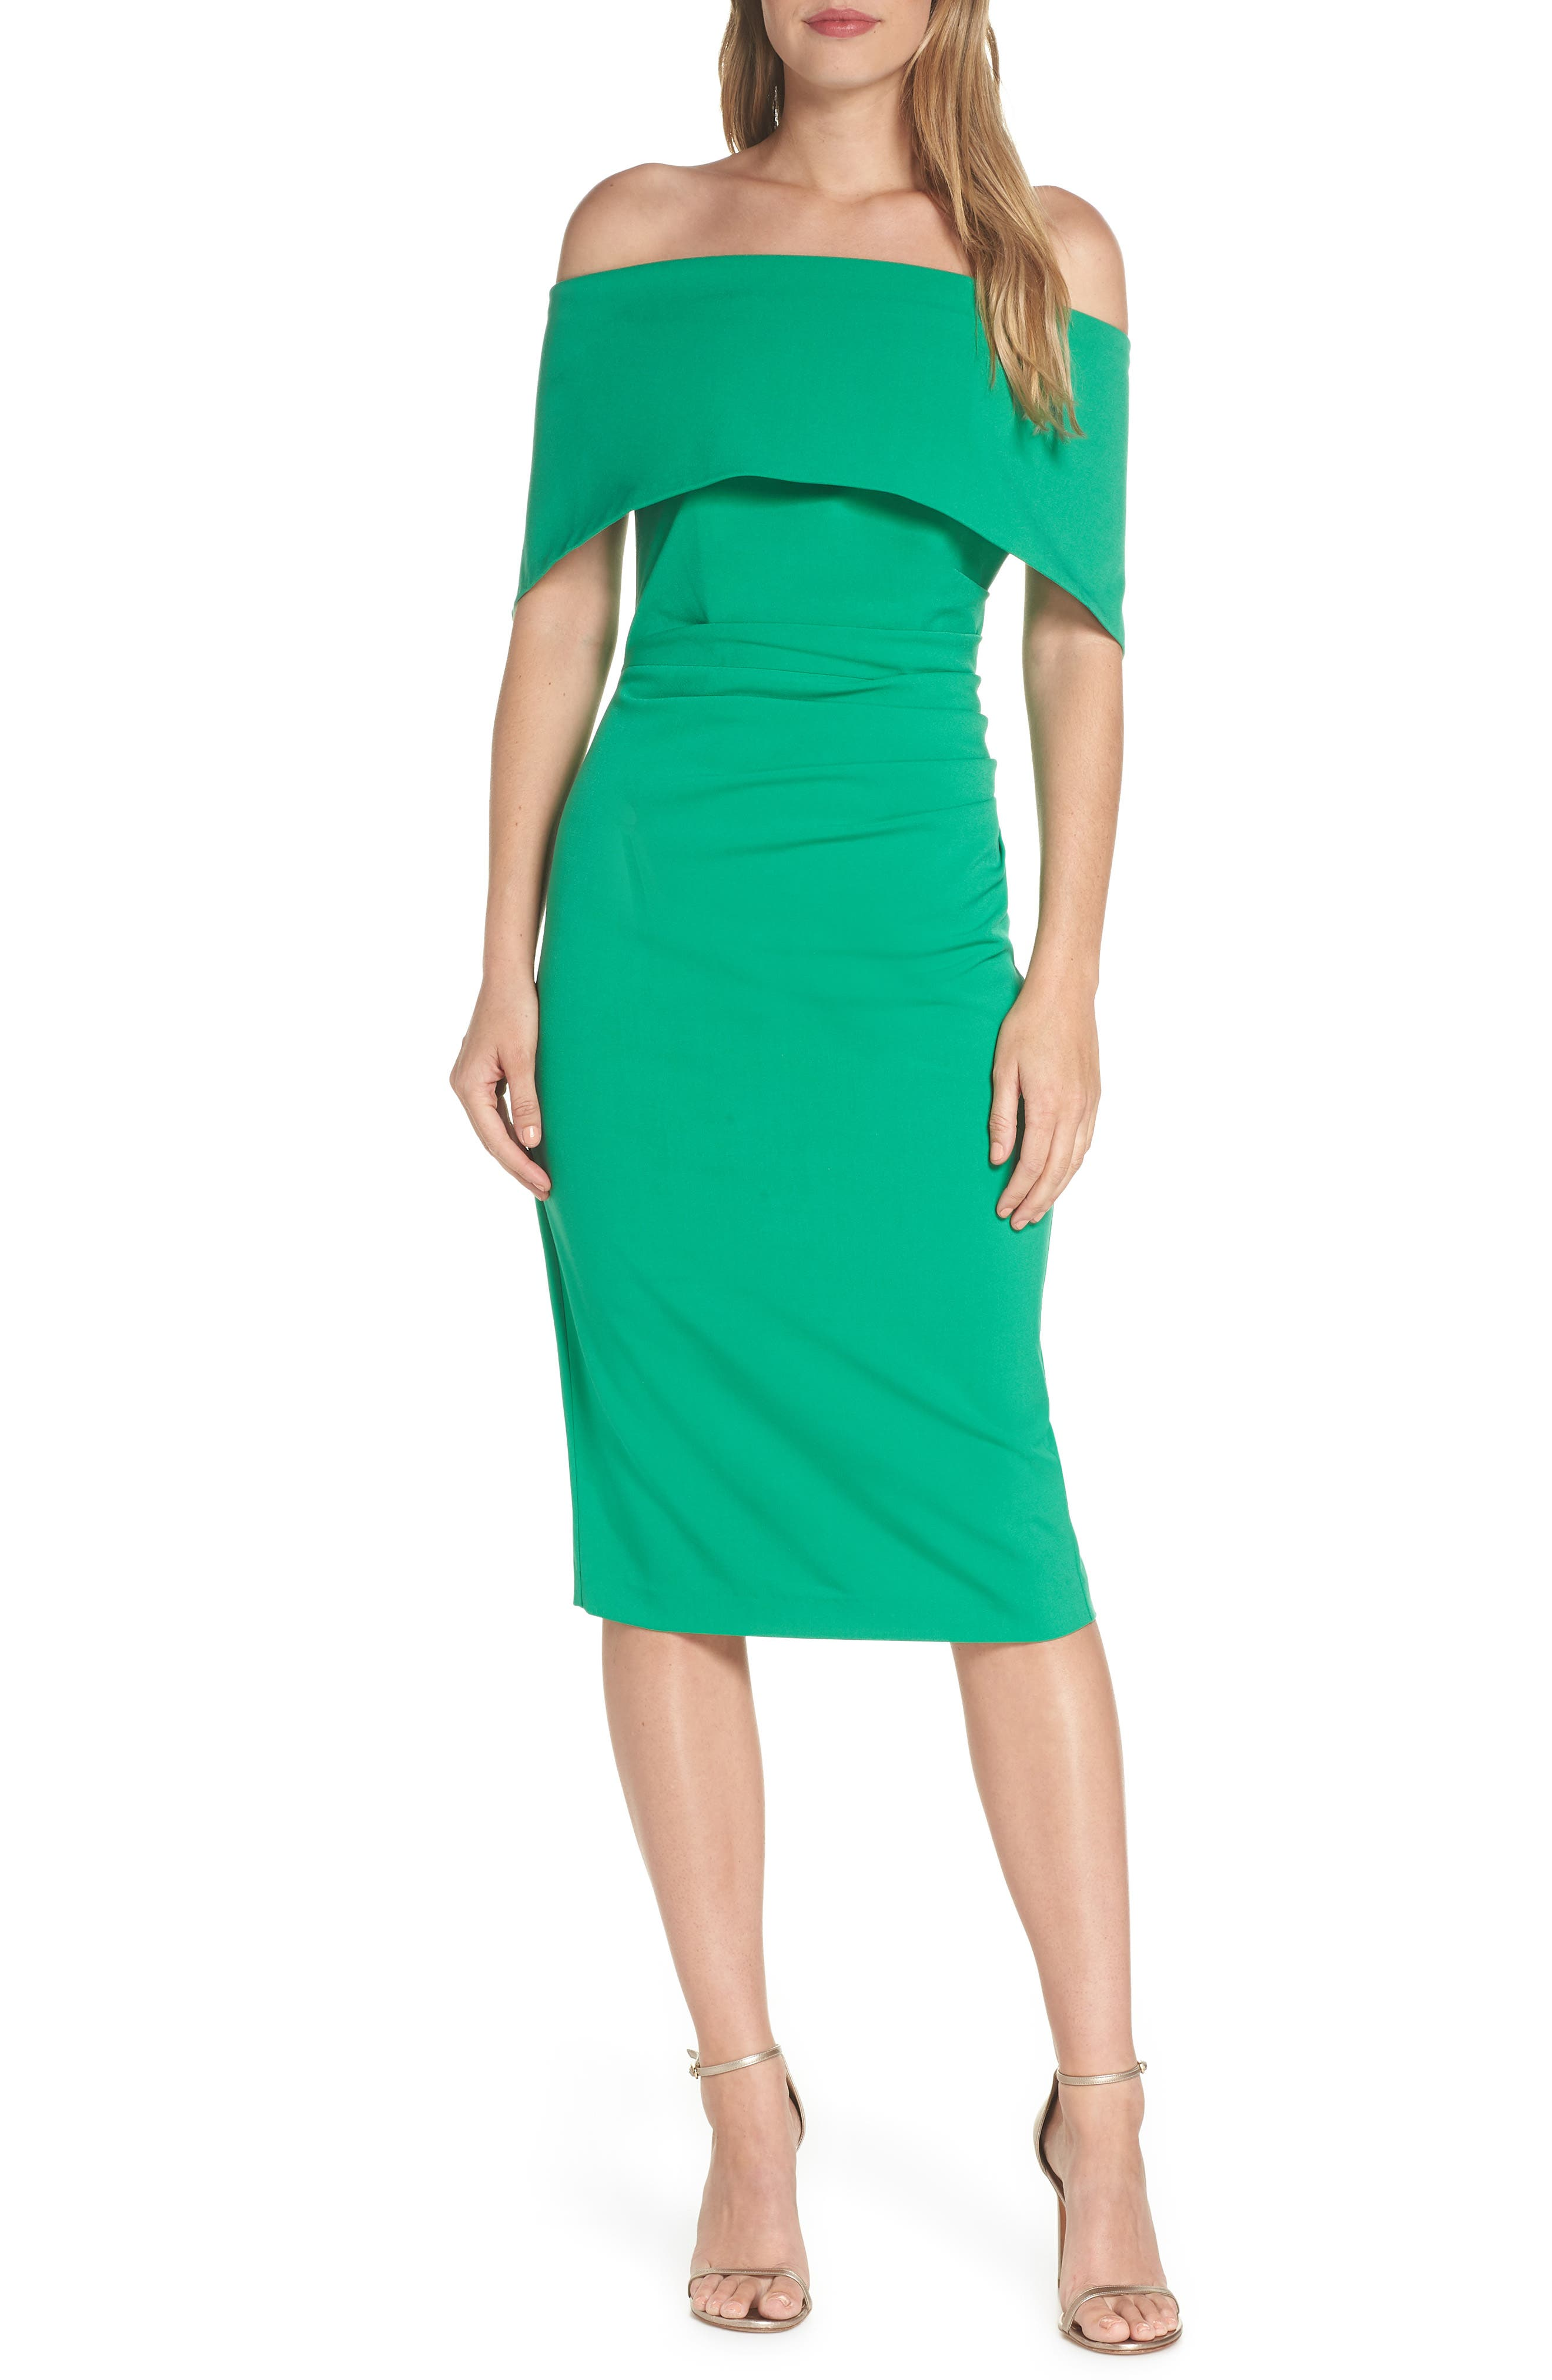 VINCE CAMUTO, Popover Midi Dress, Main thumbnail 1, color, GREEN